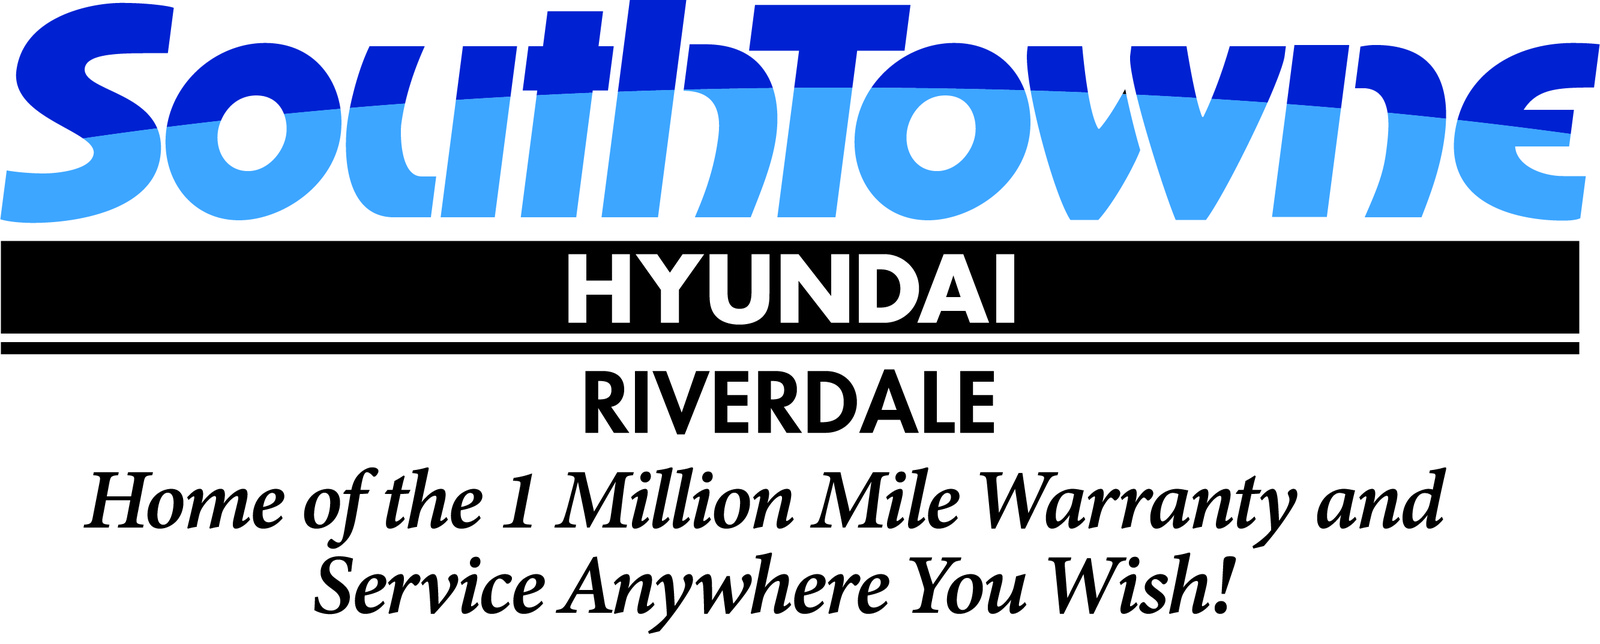 Awesome Southtowne Hyundai   Riverdale, GA: Read Consumer Reviews, Browse Used And  New Cars For Sale